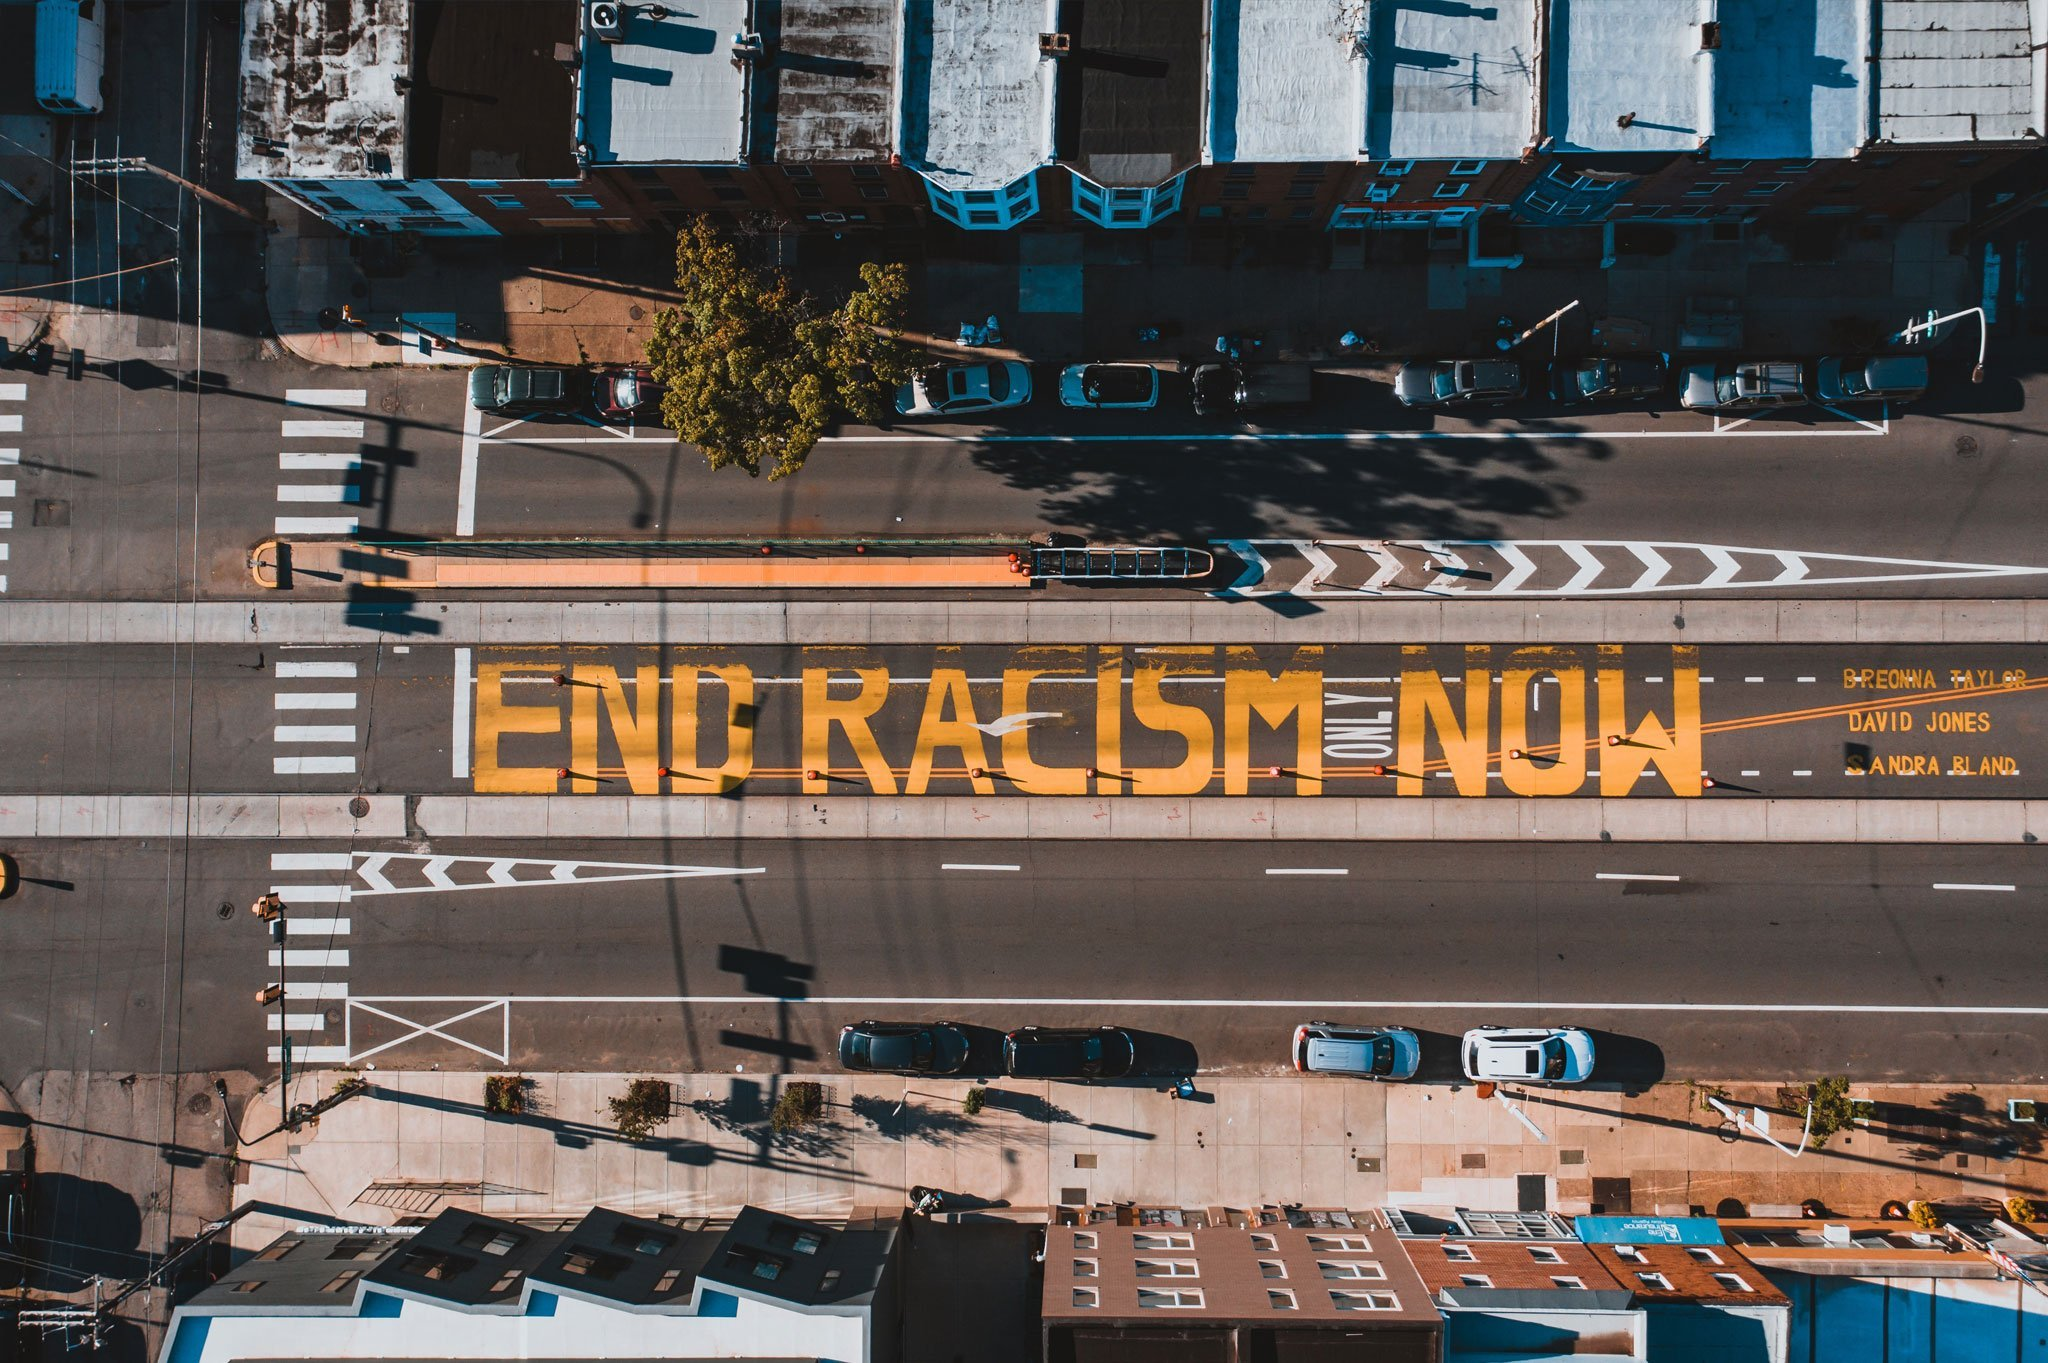 Image of End Racism Now was featured in the power of equality blog post